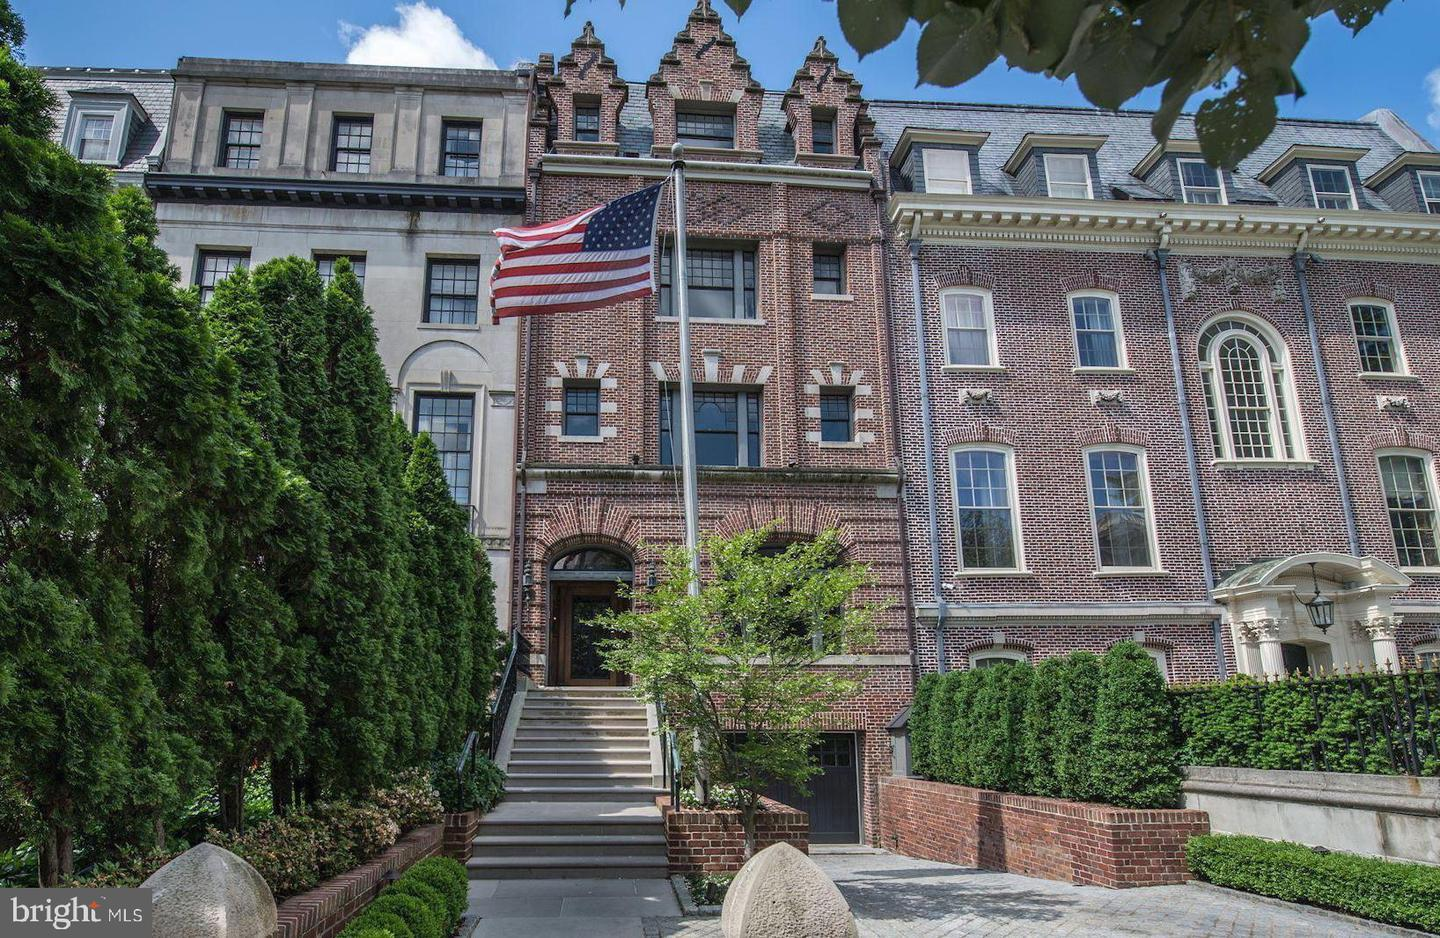 Property for Sale at 2344 Massachusetts Ave NW Washington, District Of Columbia 20008 United States